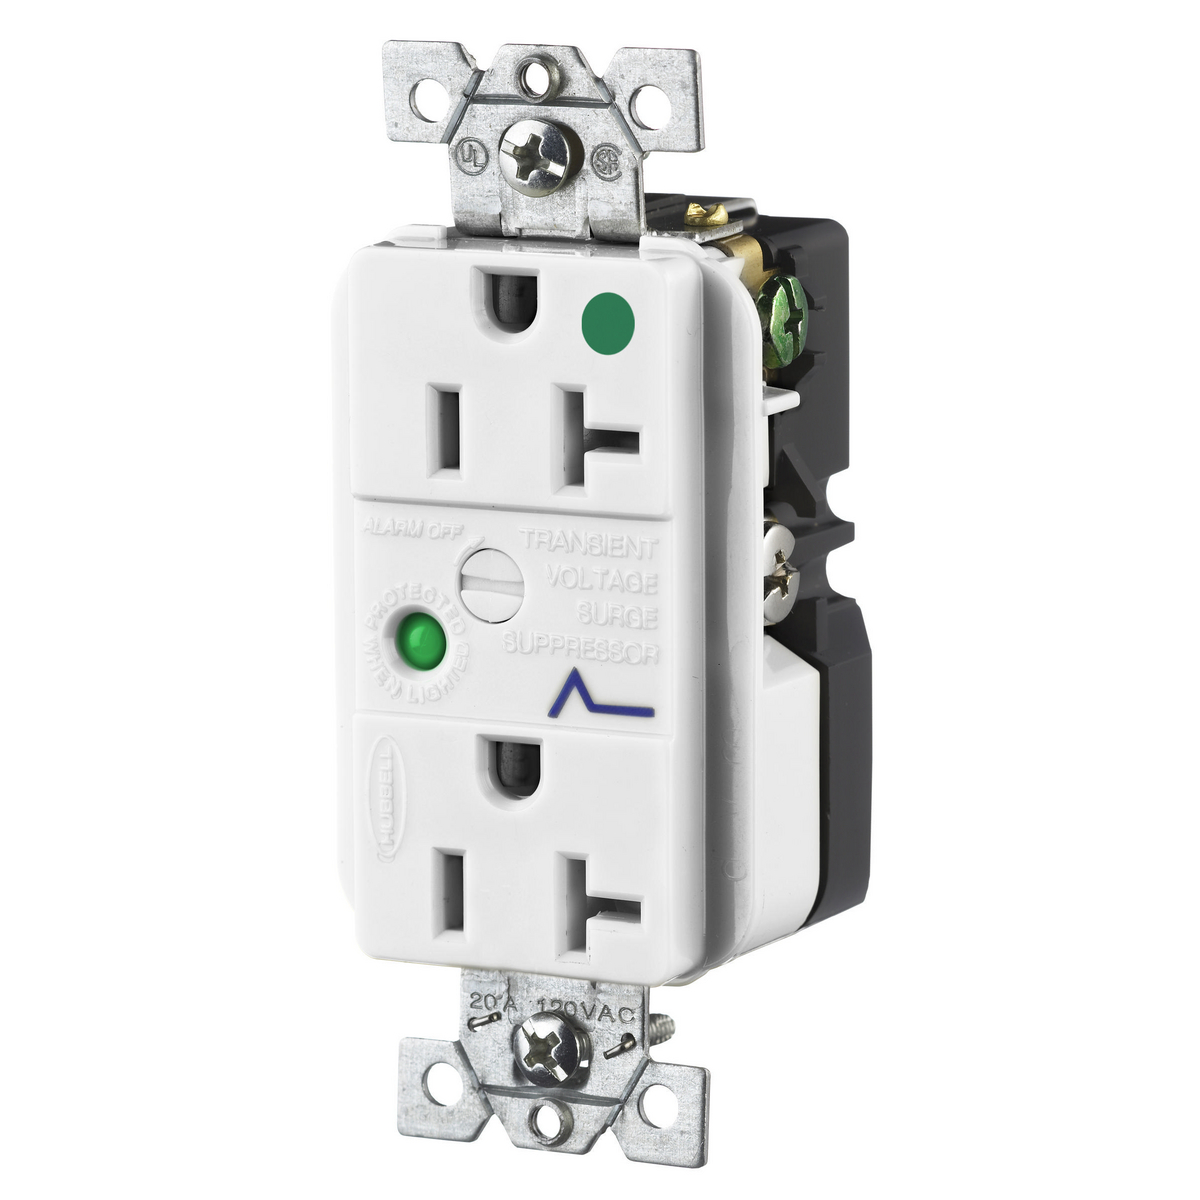 Hubbell HBL8362WSA 20 Amp 125 Volt NEMA 5-20R White Hospital Grade Surge Protection Device Duplex Receptacle